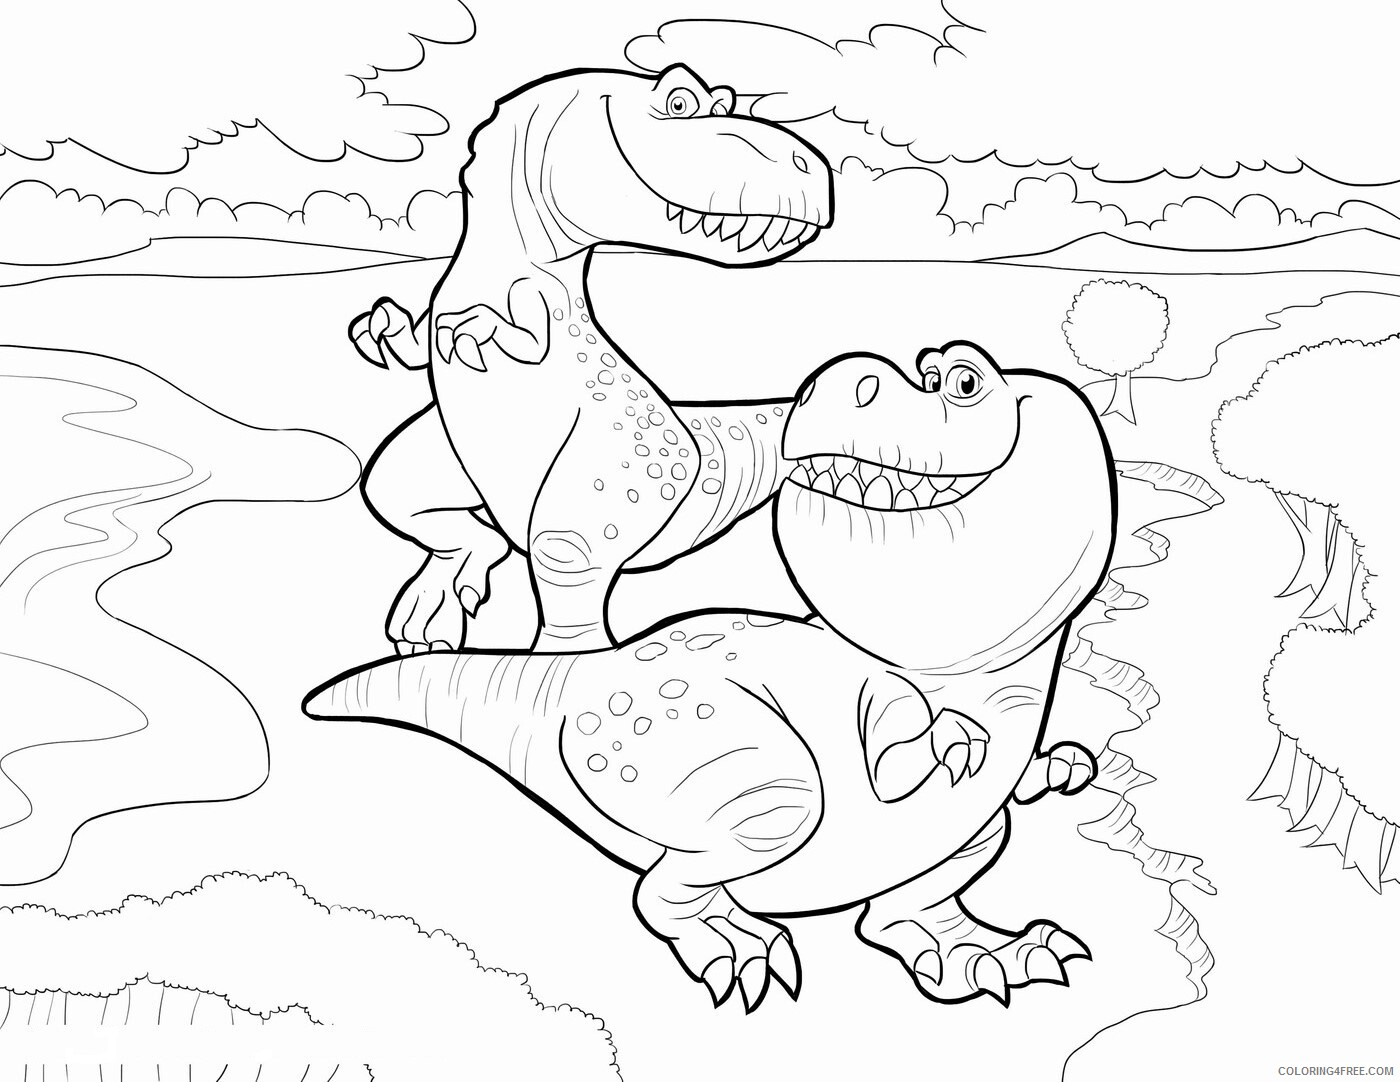 The Good Dinosaur Coloring Pages TV Film Printable 2020 08830 Coloring4free